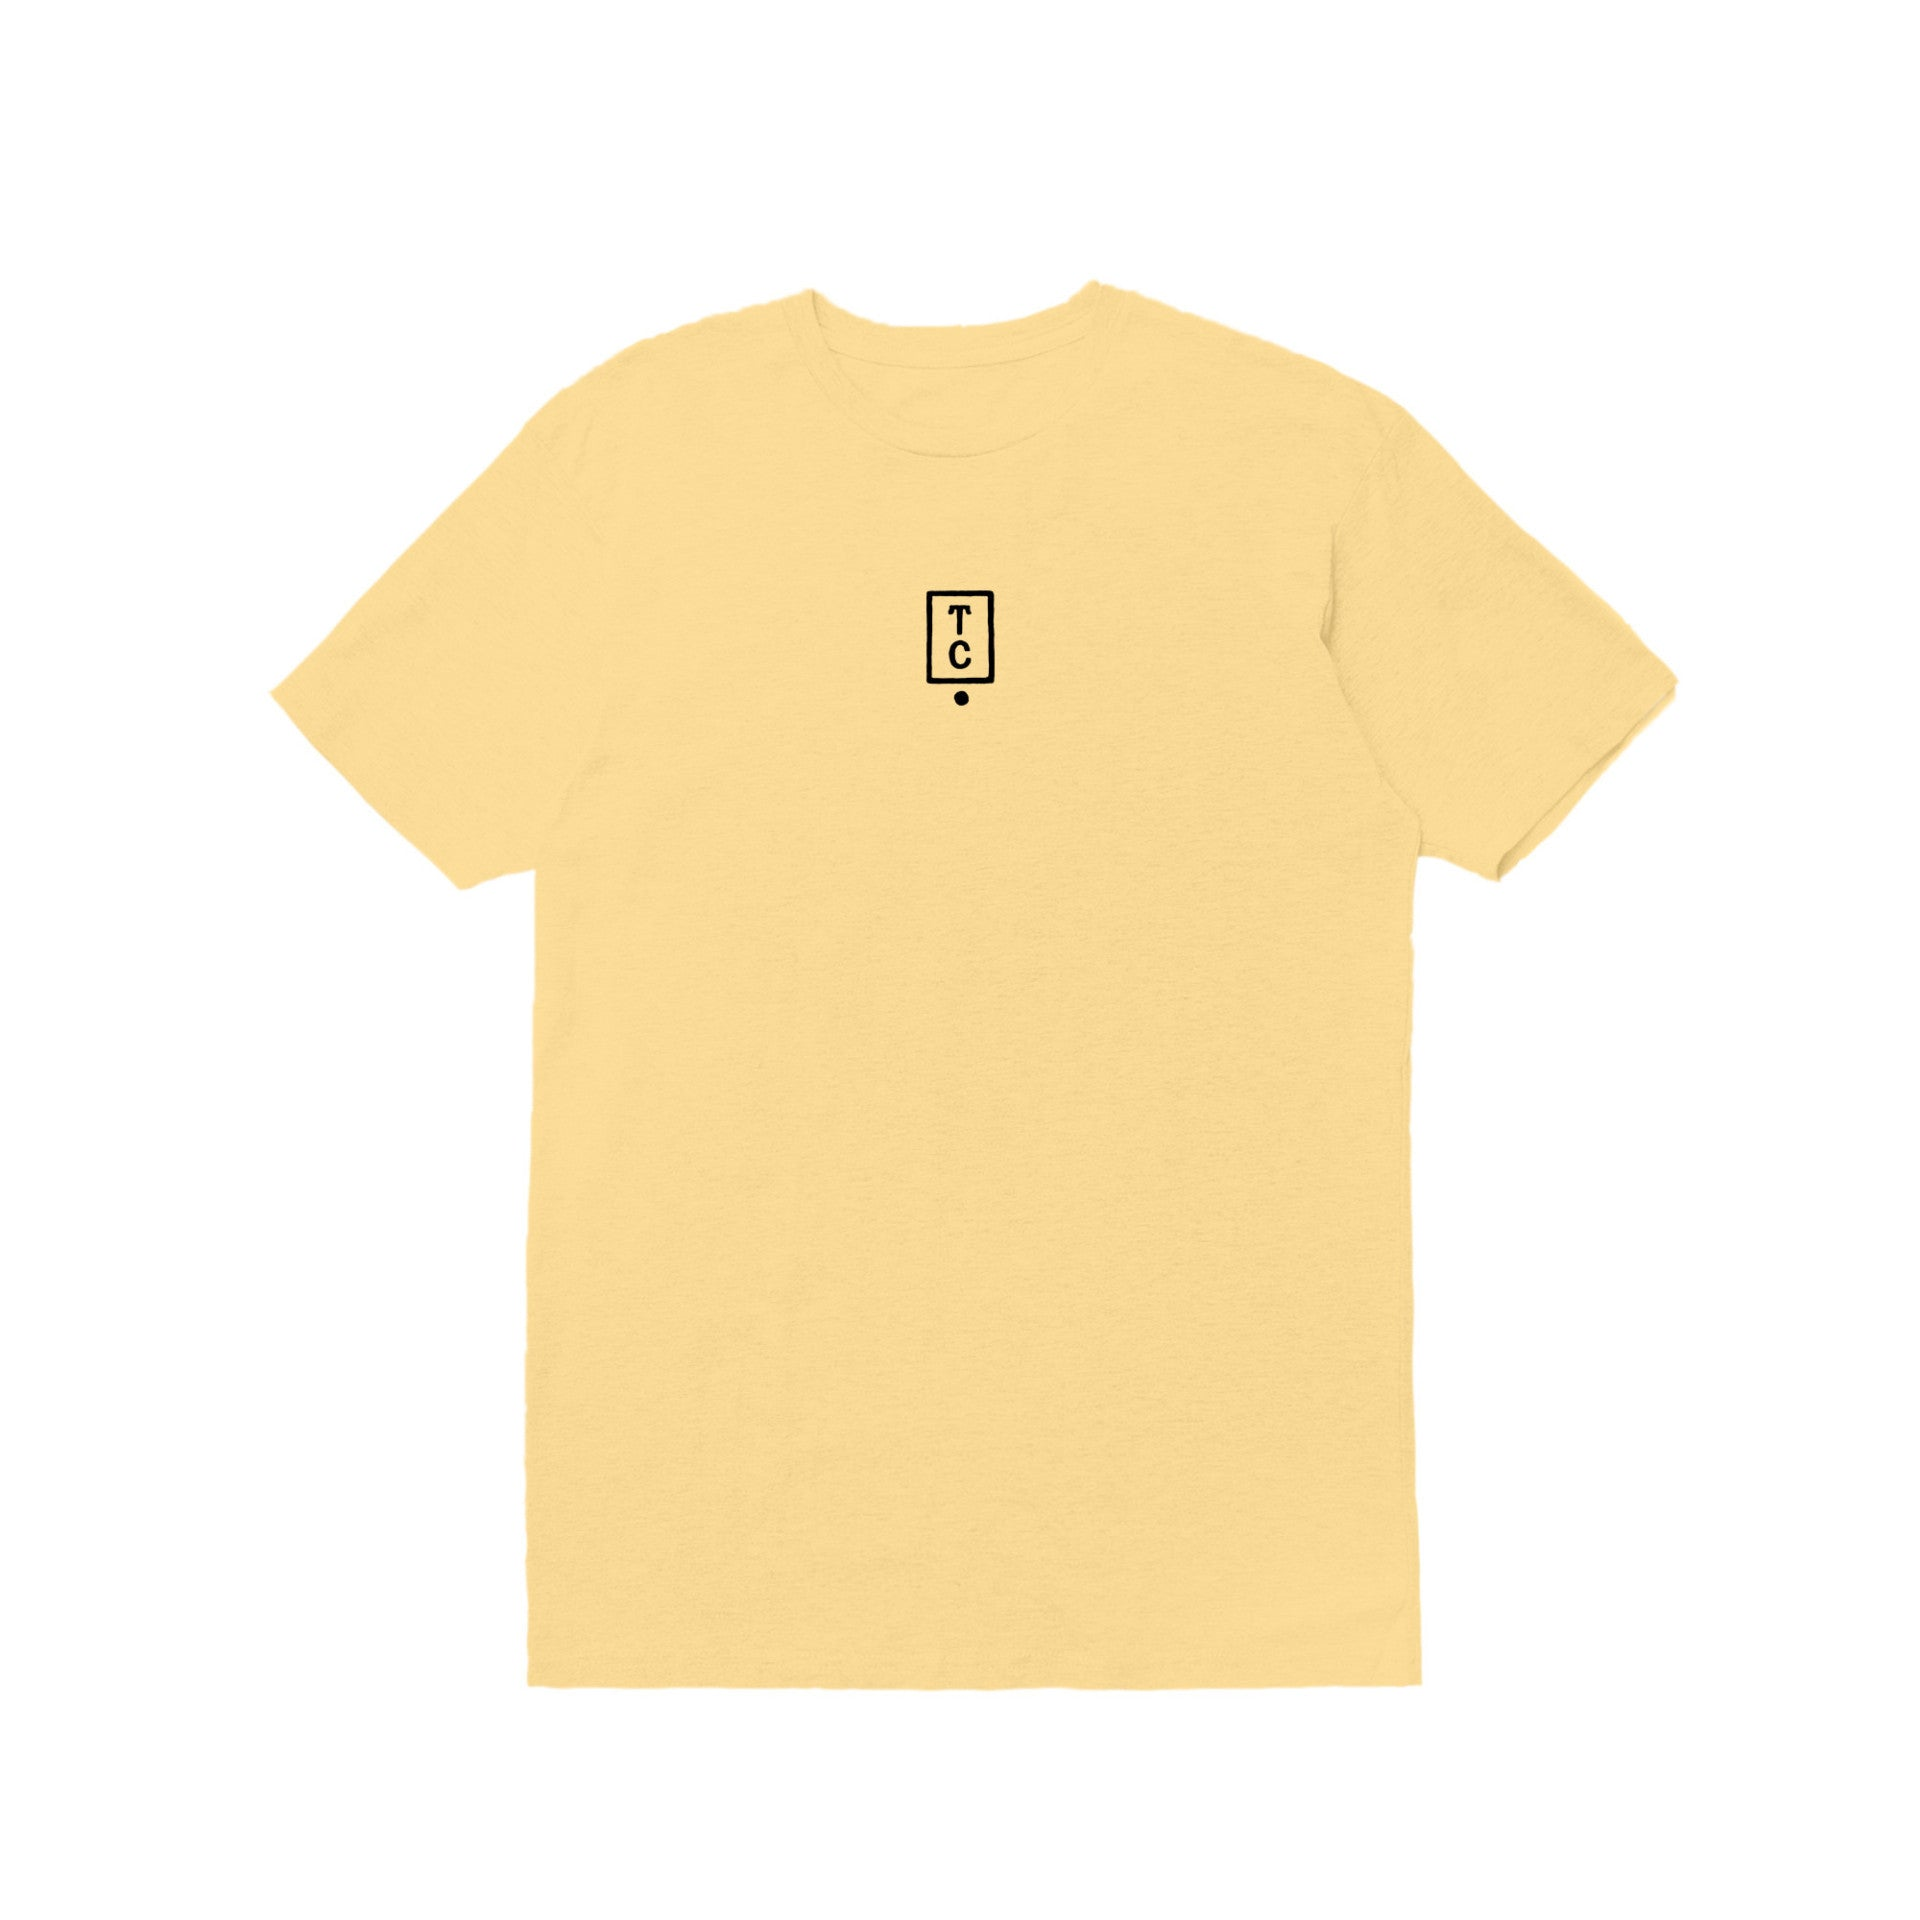 Photographer Person Tee - Squash